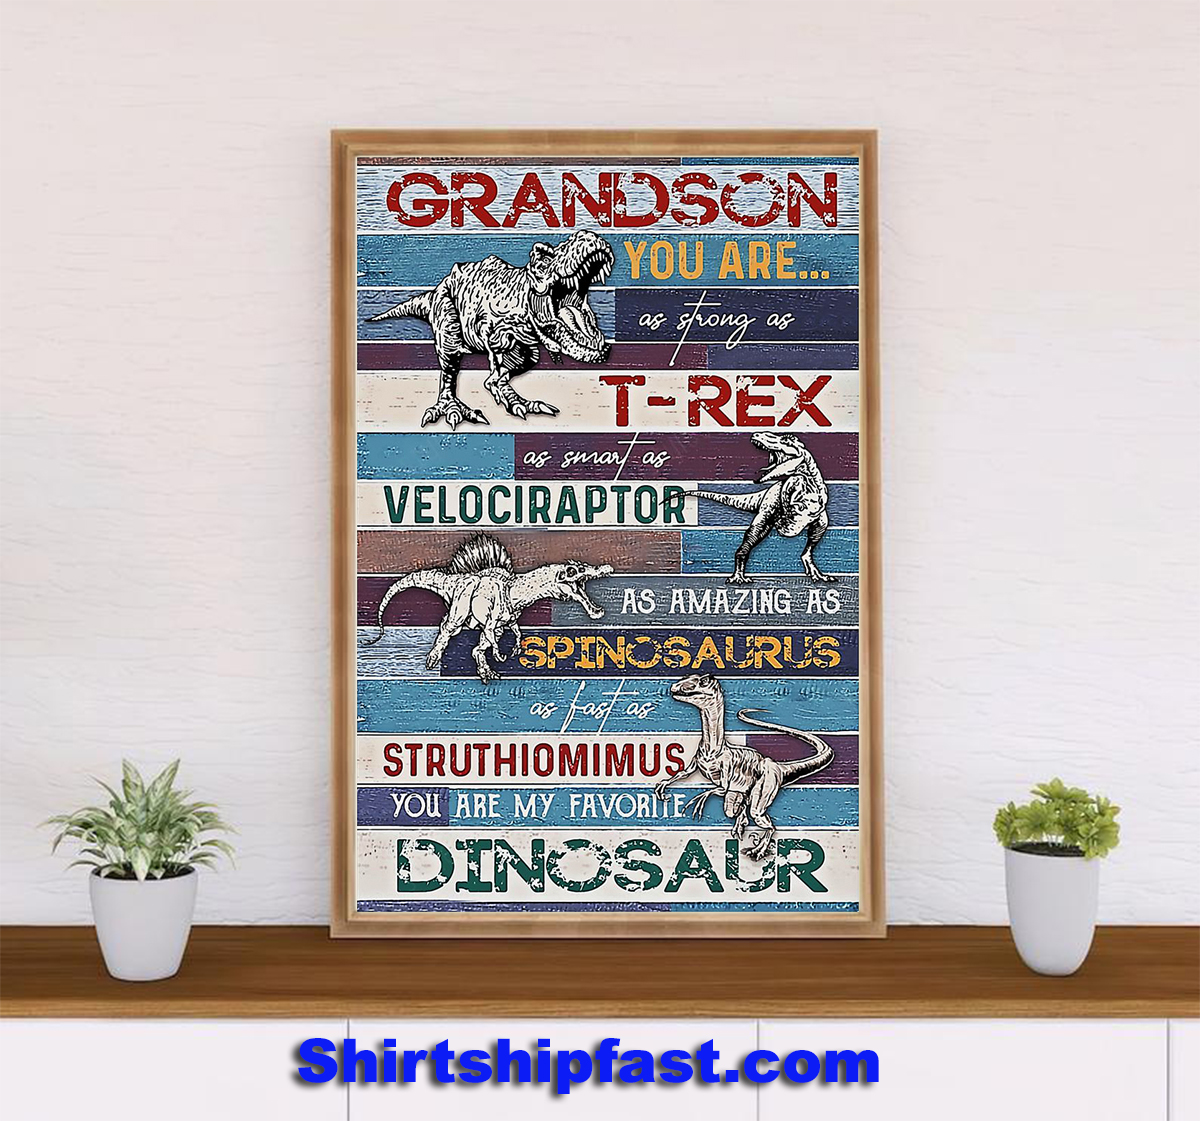 Dinosaur Grandson You are as strong as T-rex poster - Picture 2